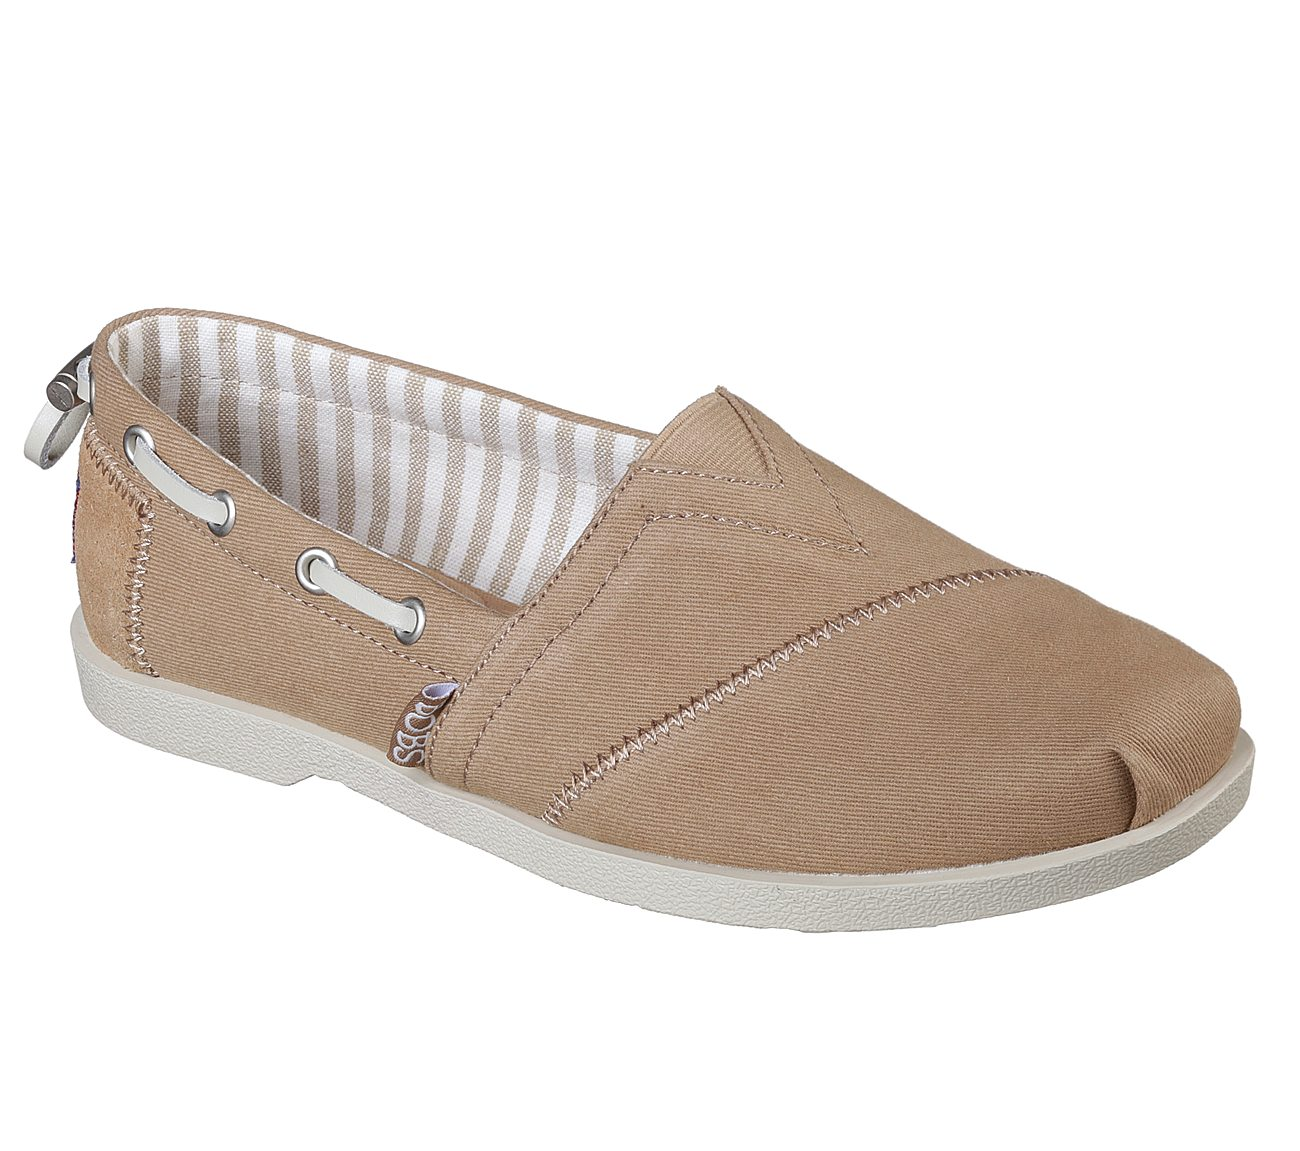 Skechers Bobs Women S Chill Luxe Canvas Slip On Shoe Taupe